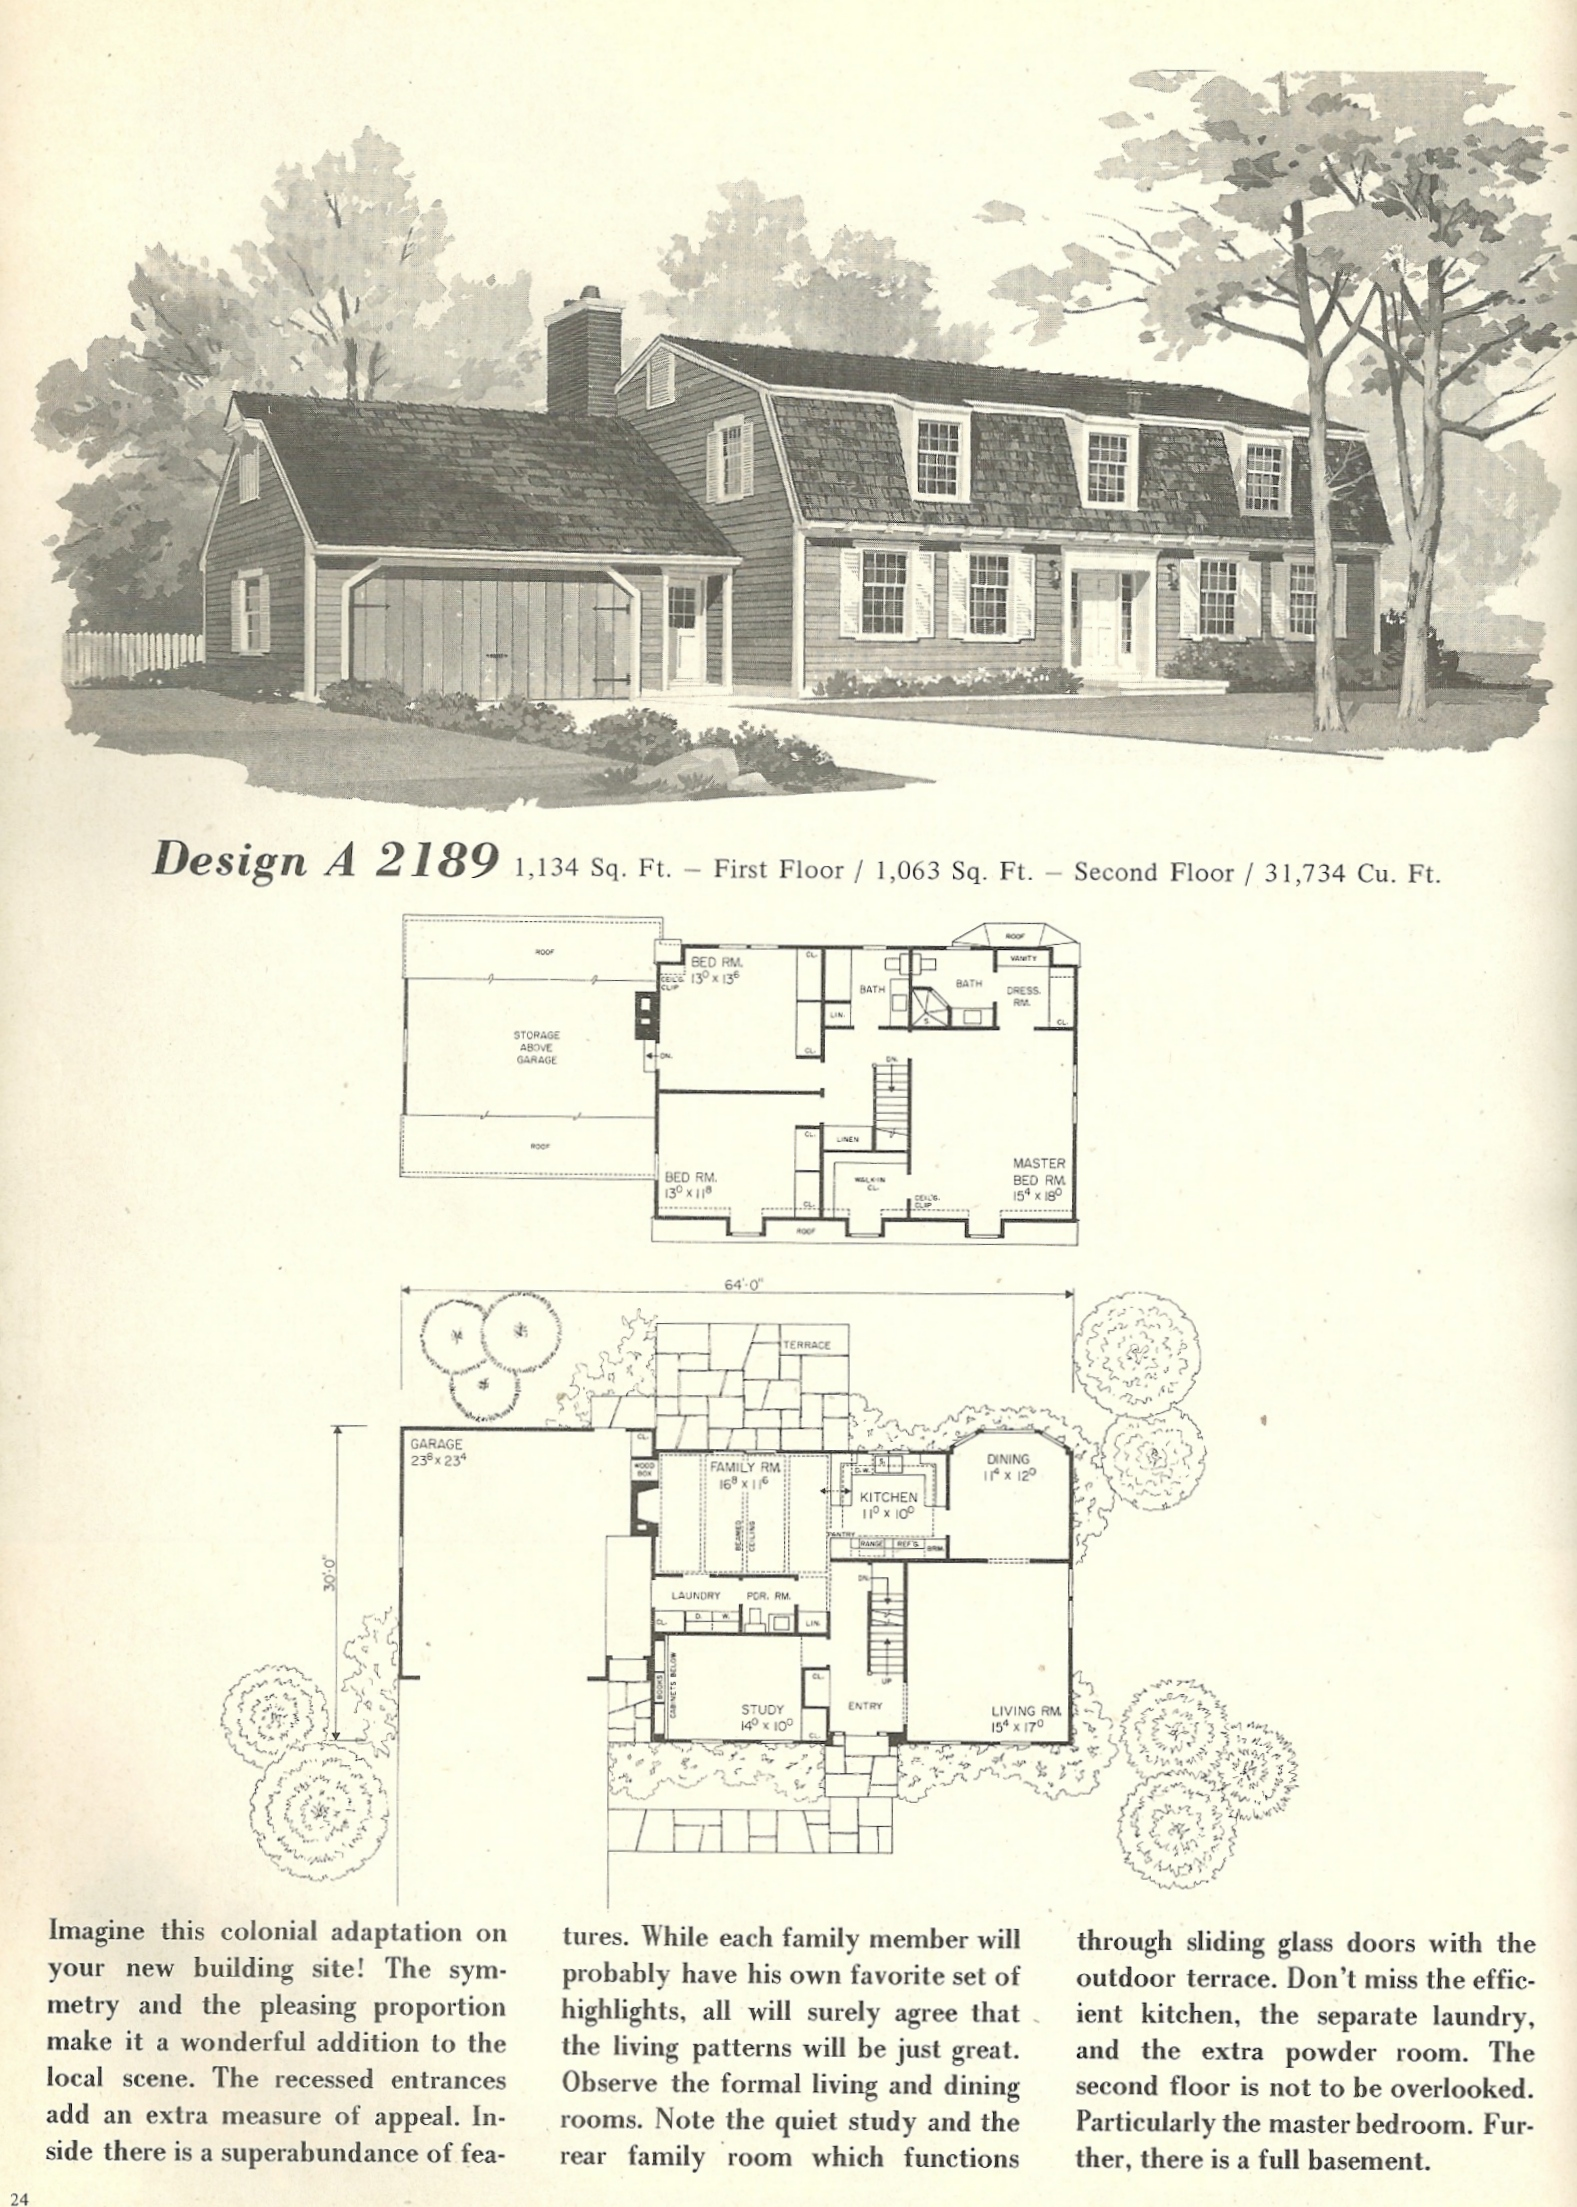 Vintage House Plans 2189 Antique Alter Ego